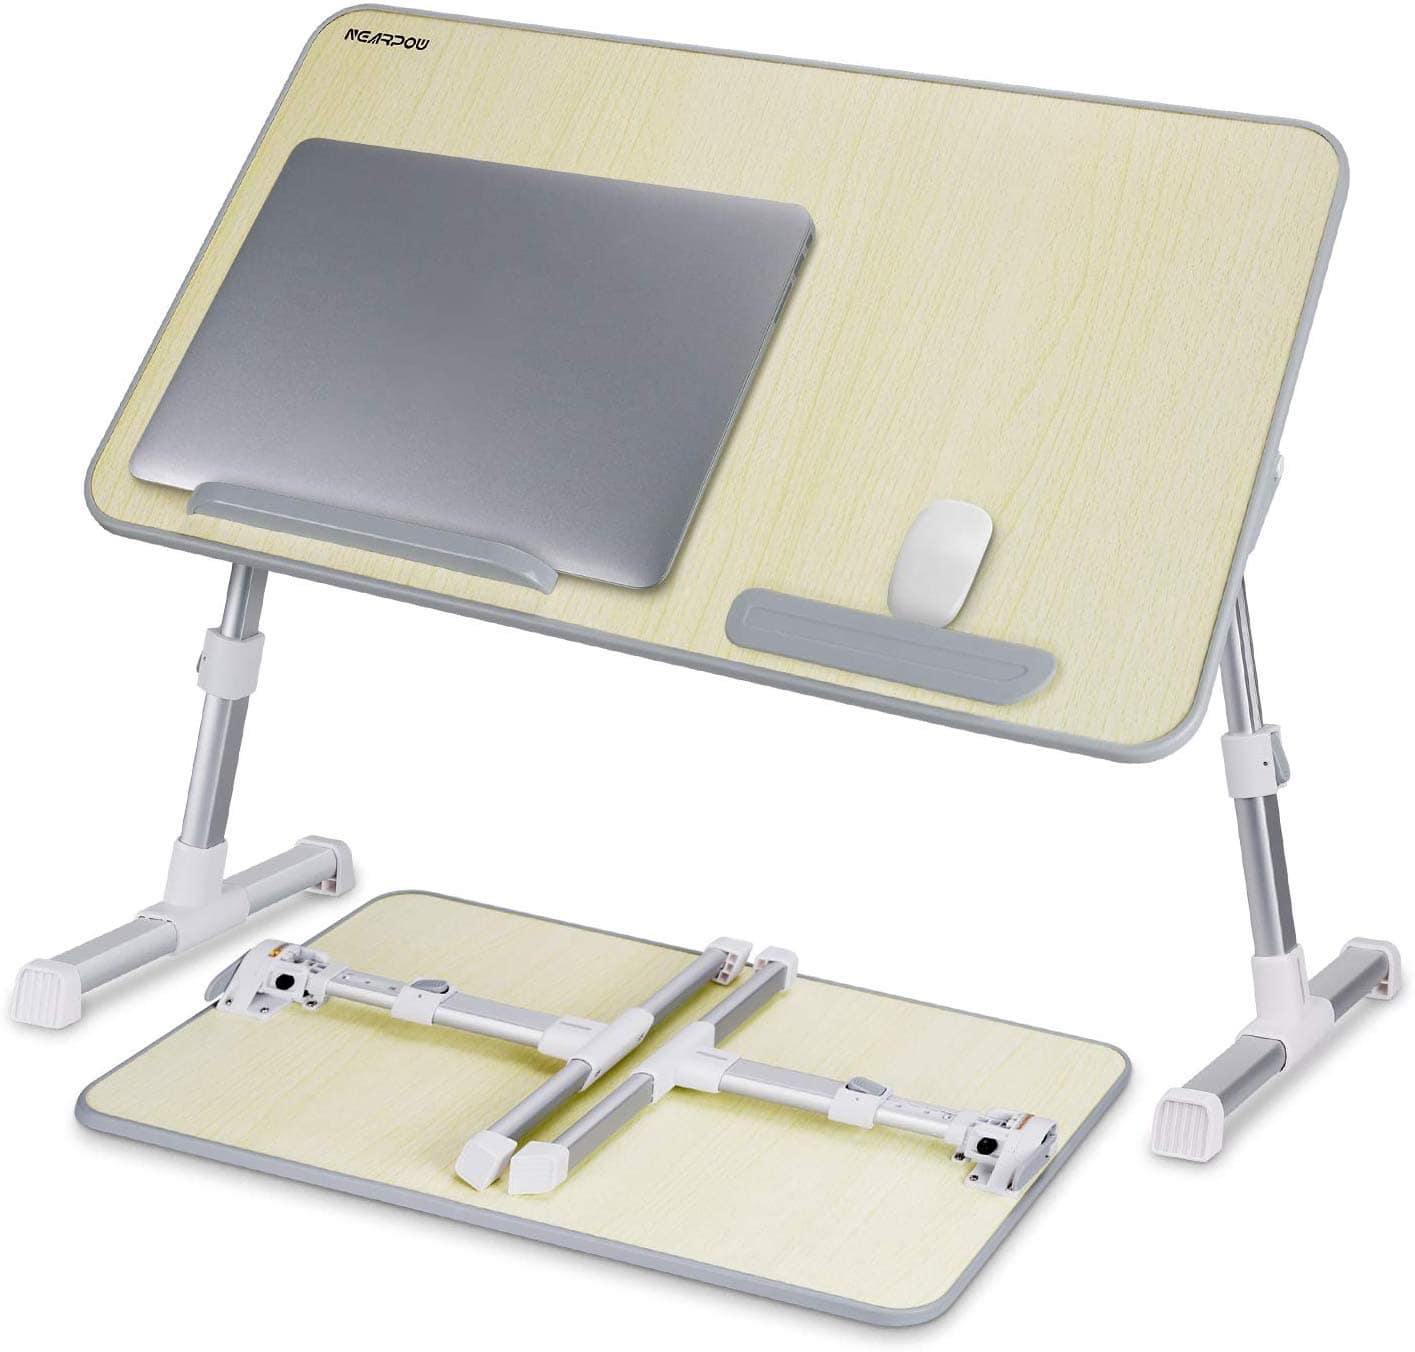 Laptop Desk for Bed, Height and Angle Adjustable, for Both Right Handed and Left Handed People -  $22.79